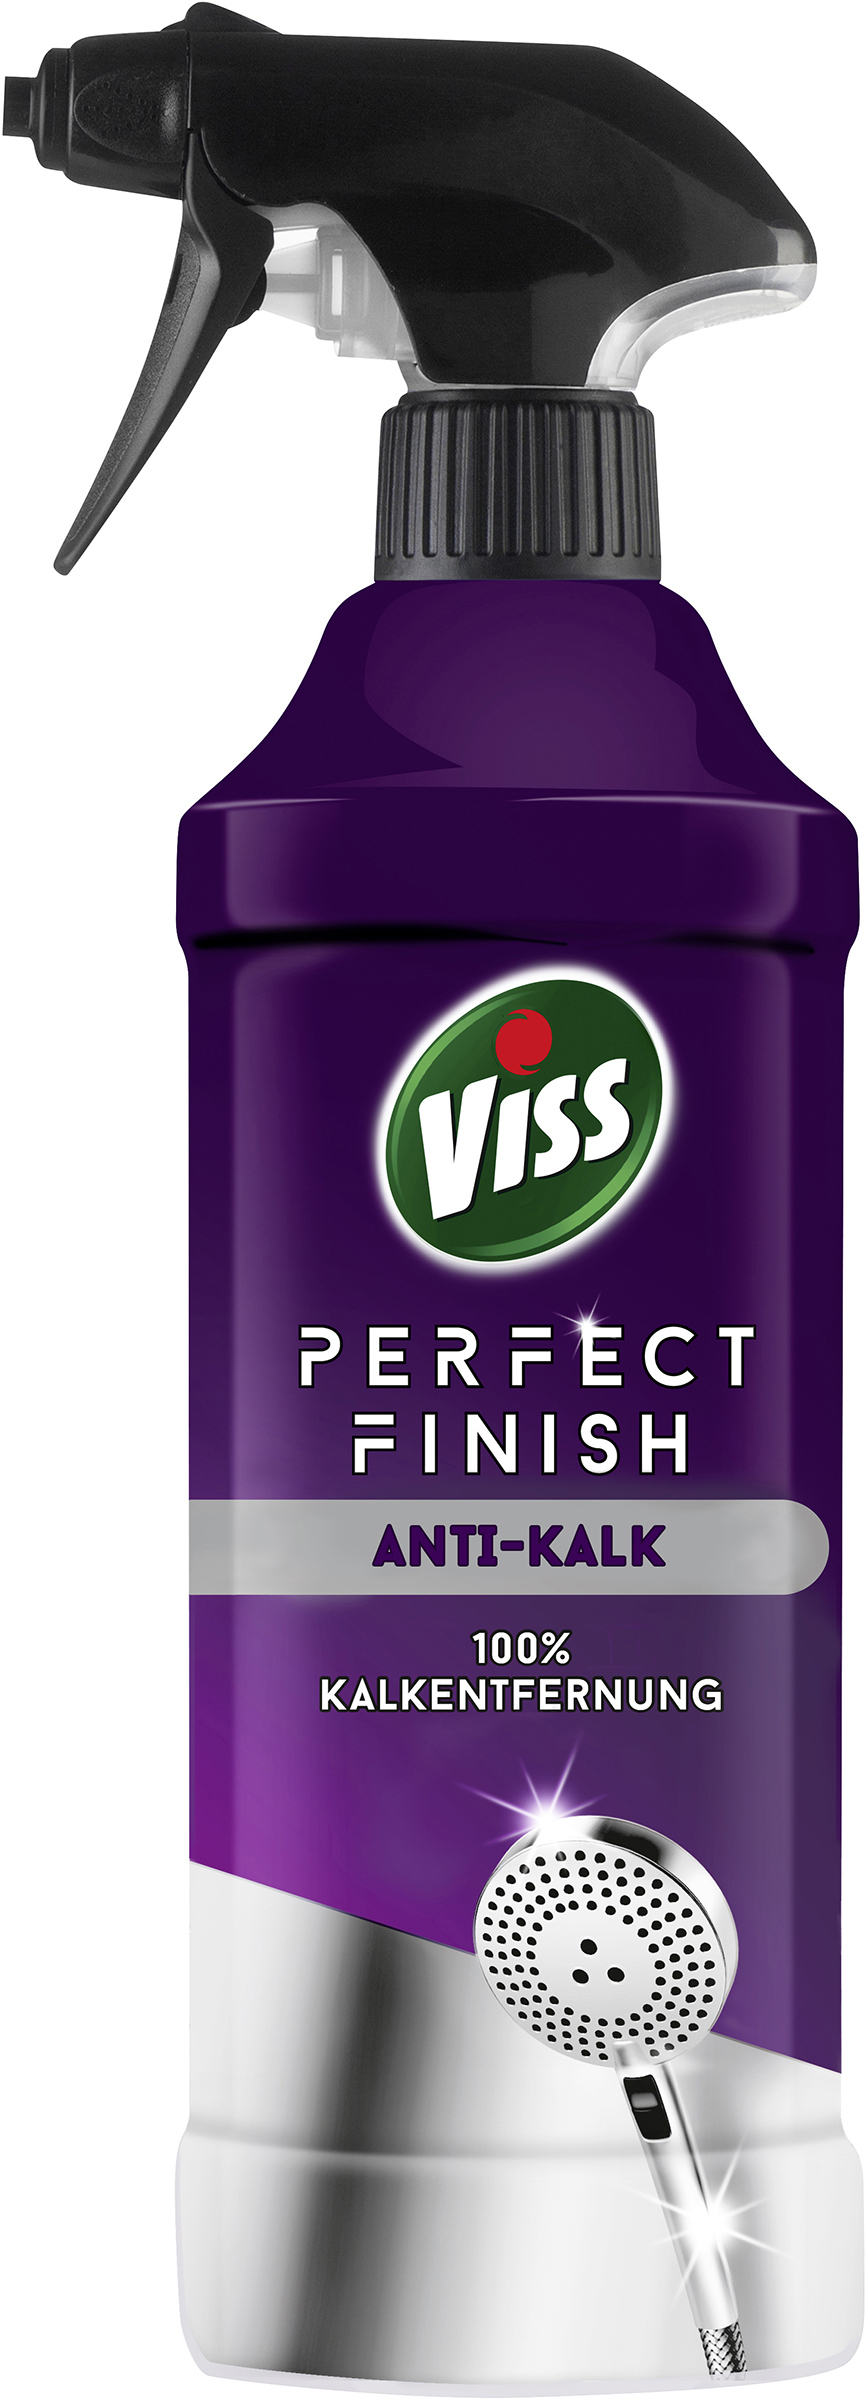 Viss Anti Kalk 6x435ml FL